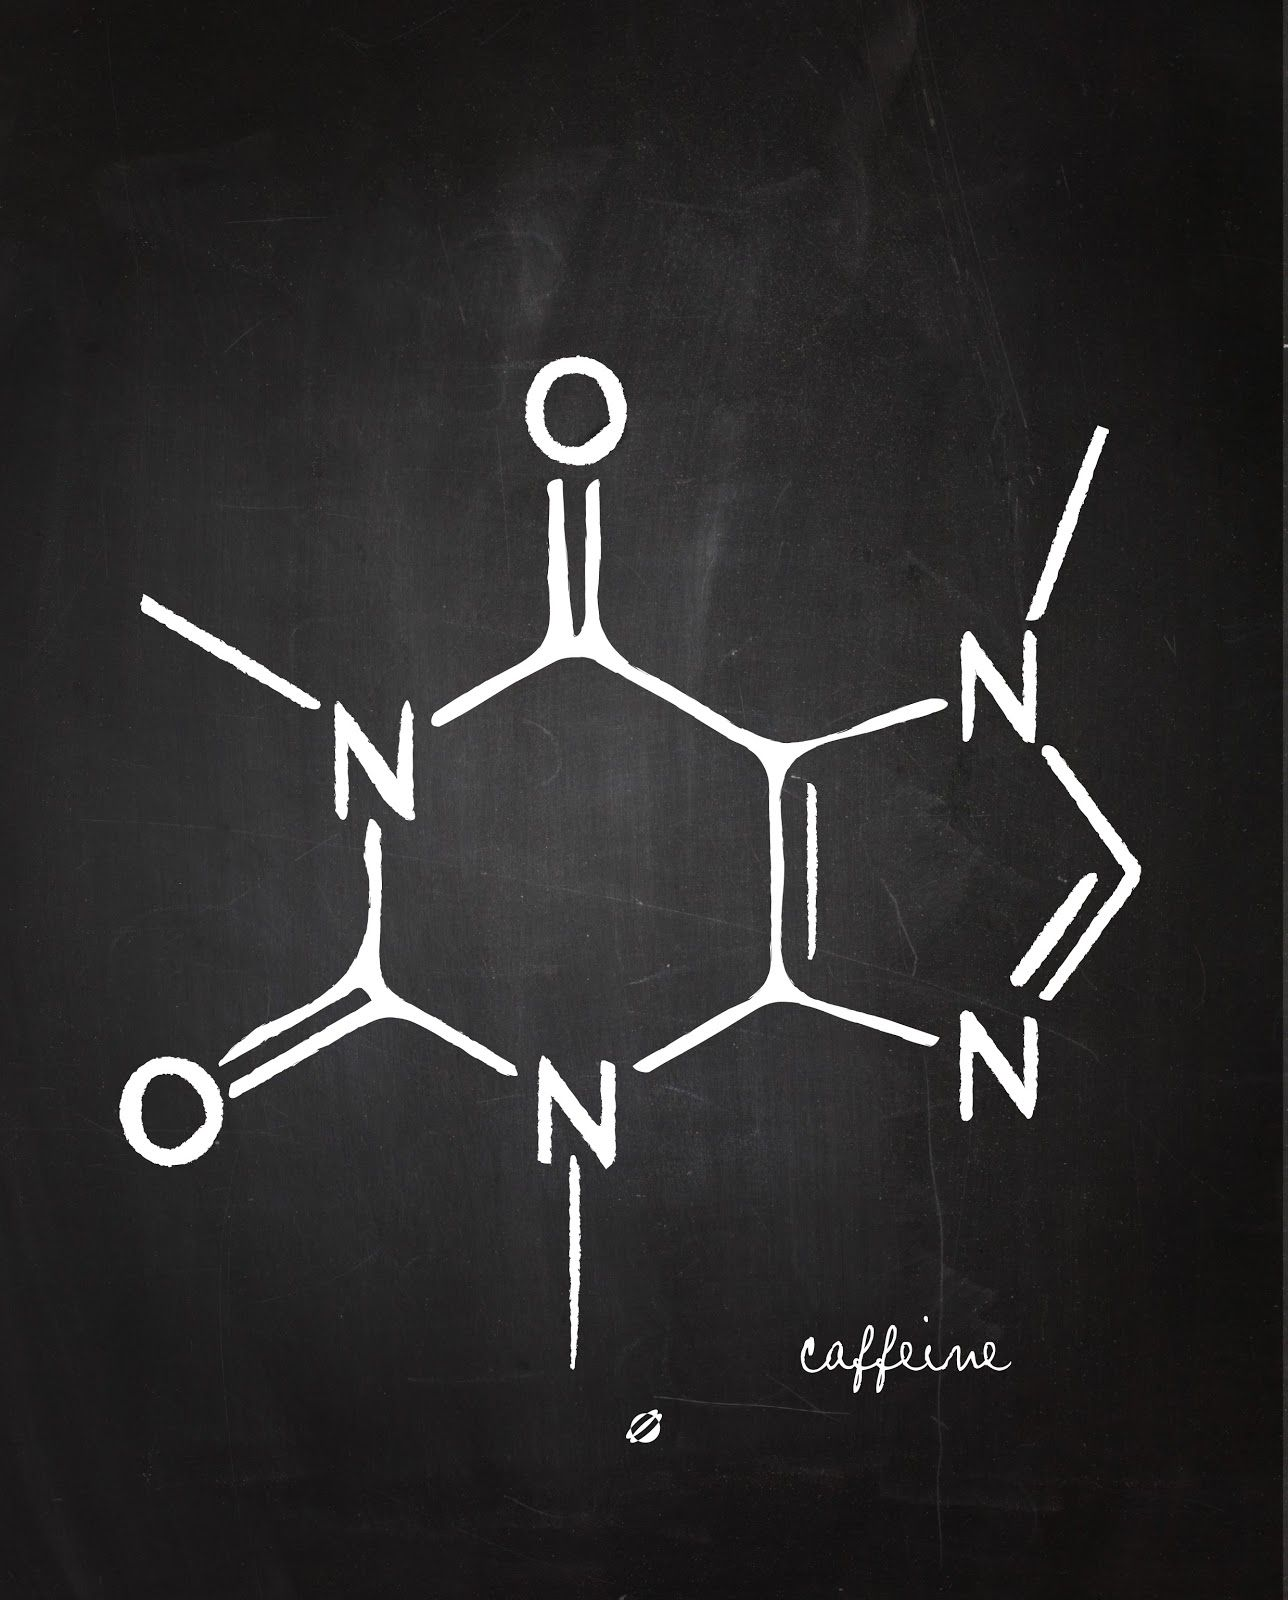 small resolution of lostbumblebee 2014 caffeine chemistry 101 free printable plant science food science science humor